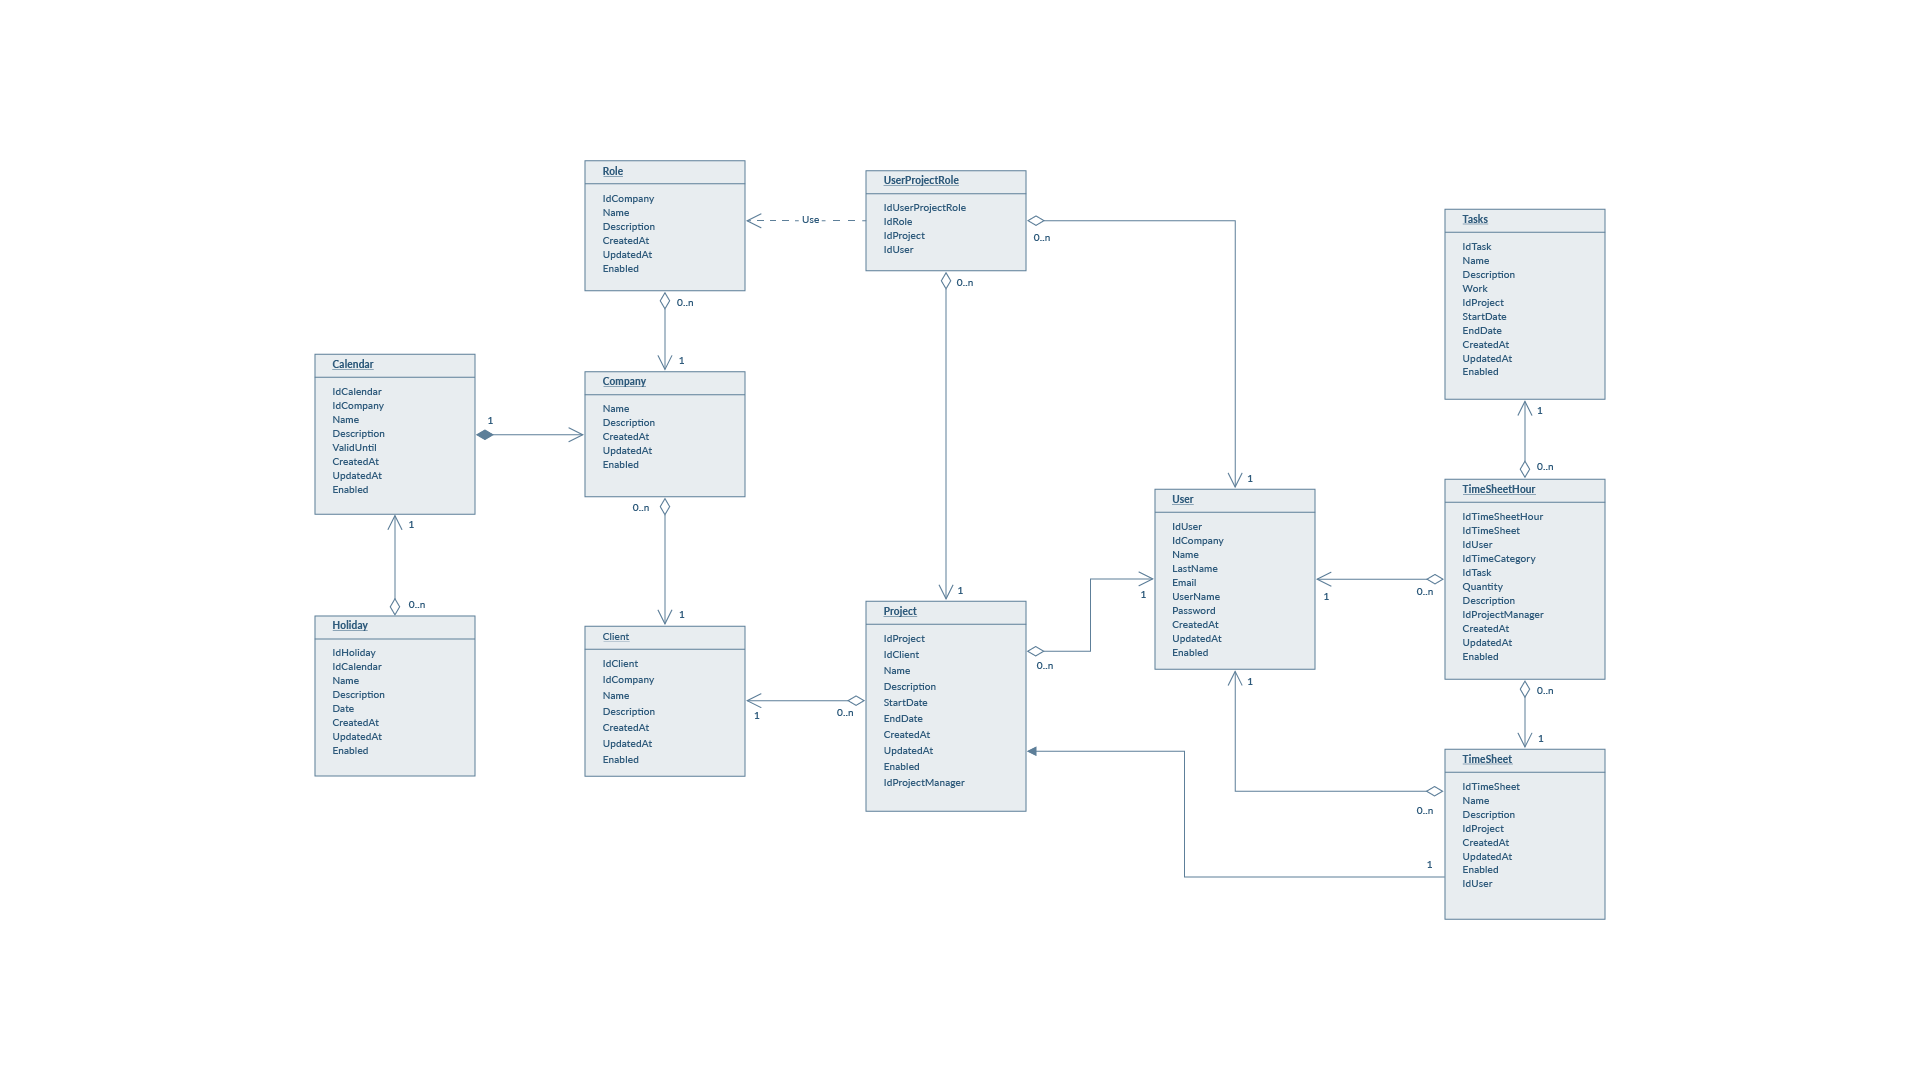 UML Diagram with draw.io